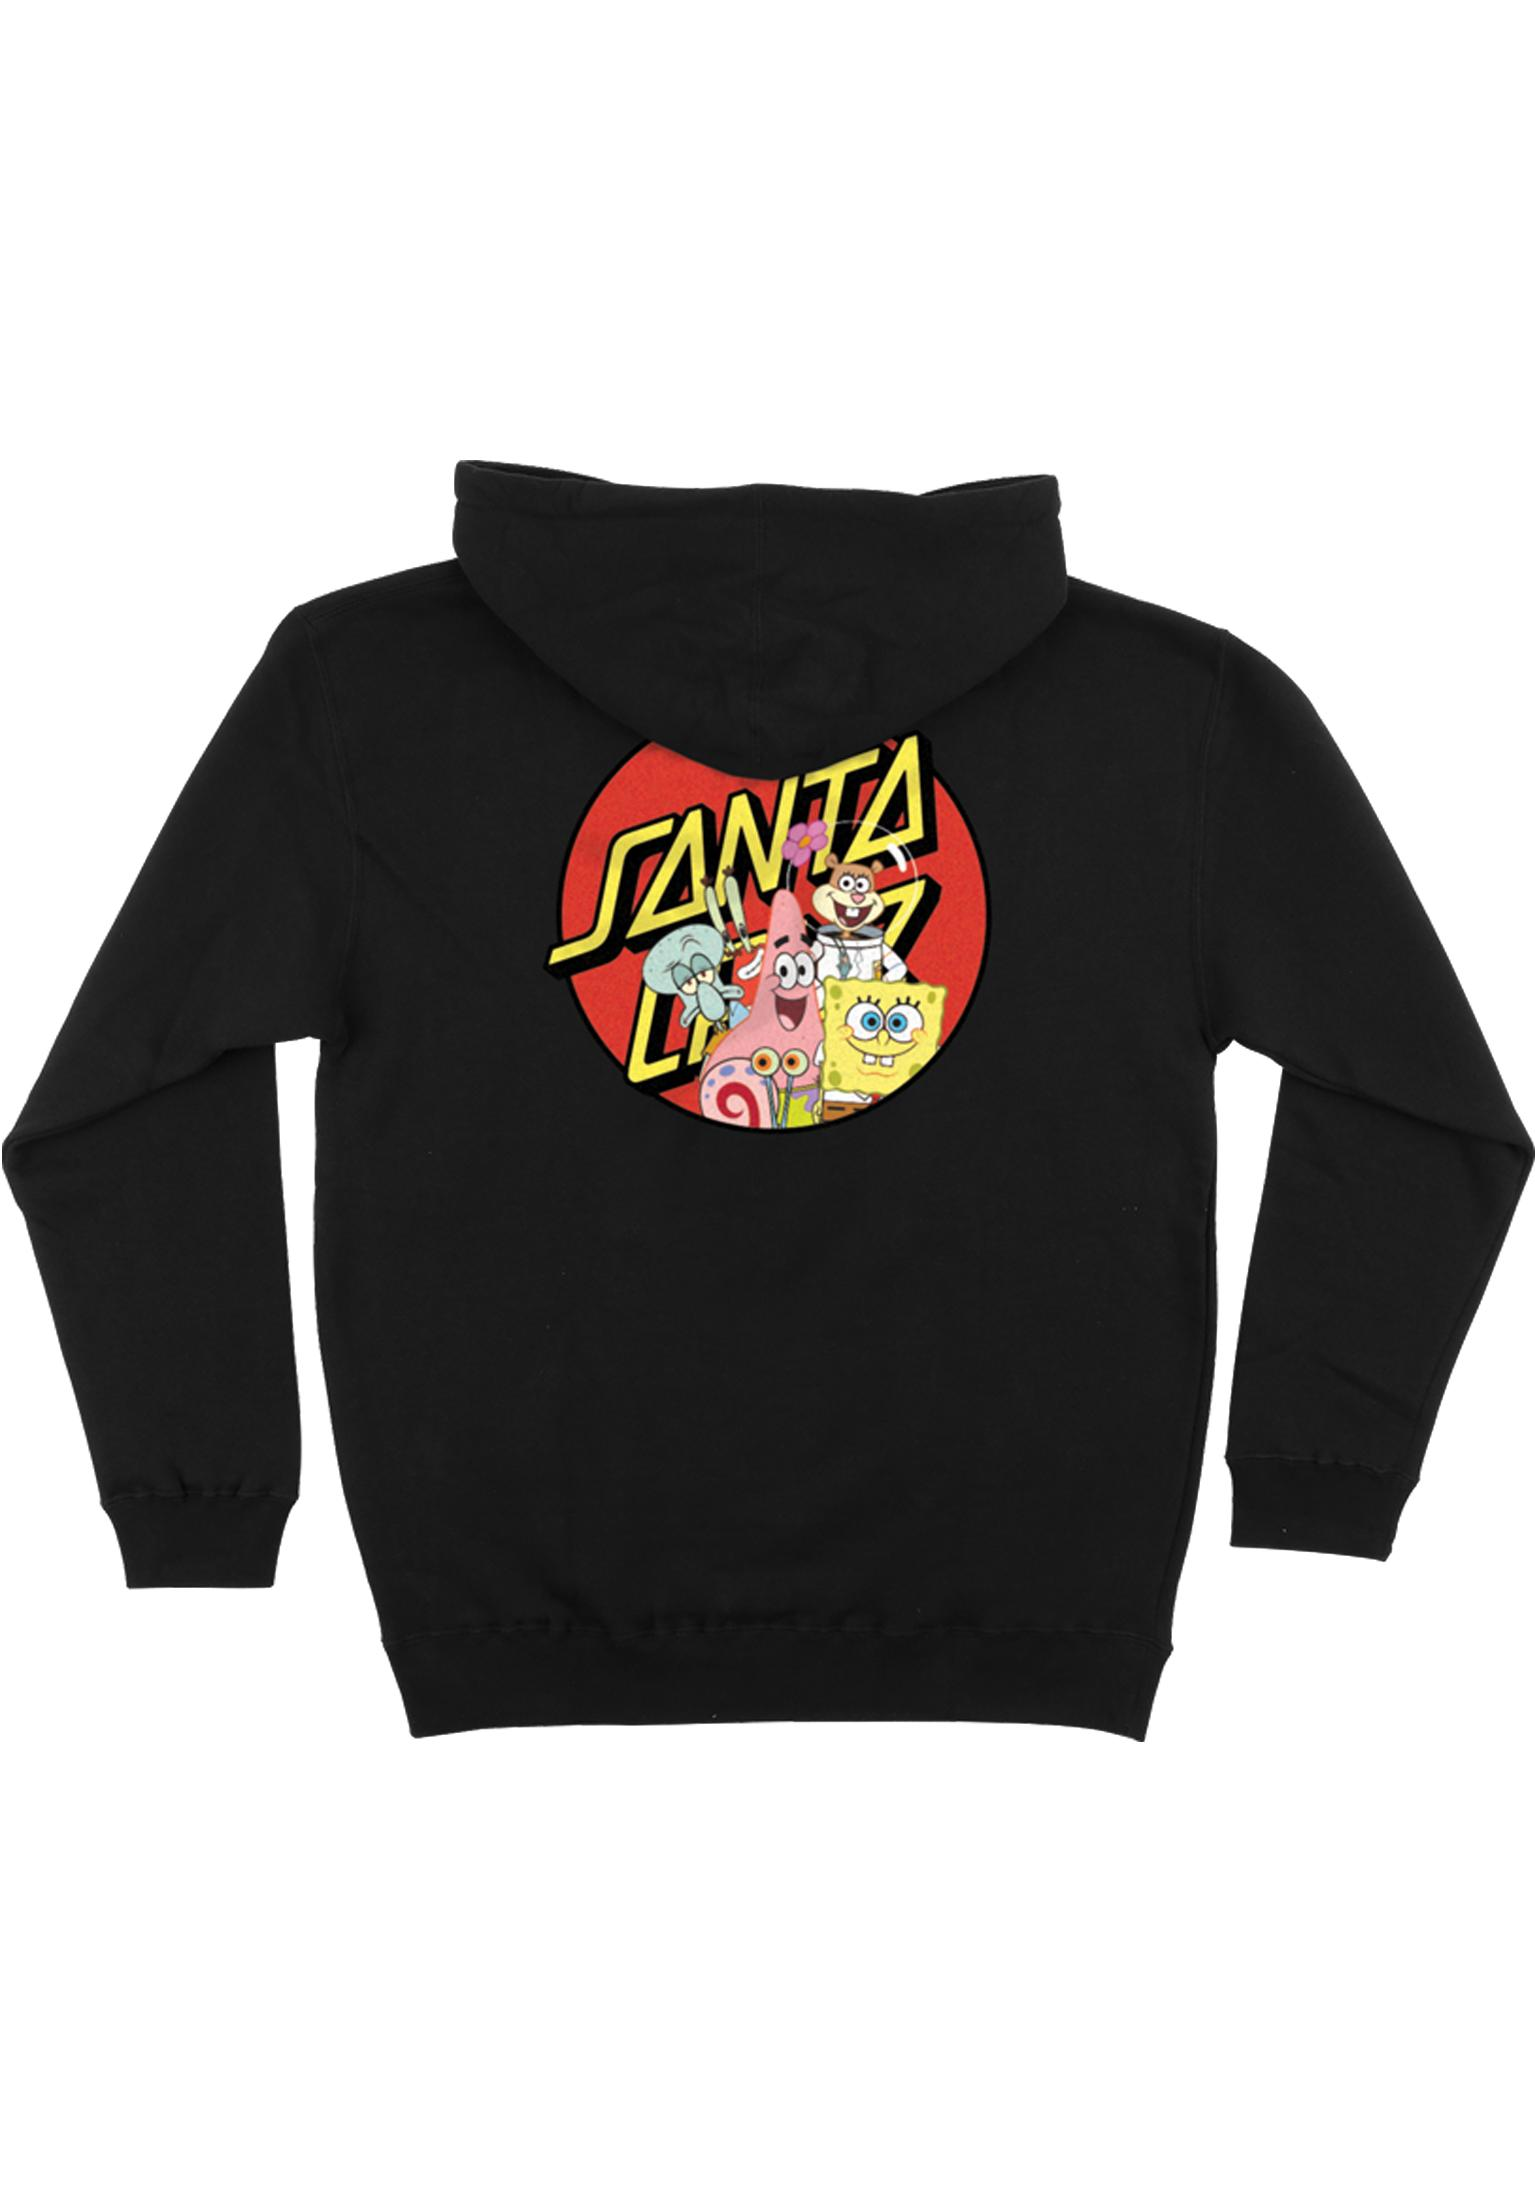 santa-cruz-hoodies-sb-sponge-group-hooded-black-closeup1-0445493.jpg